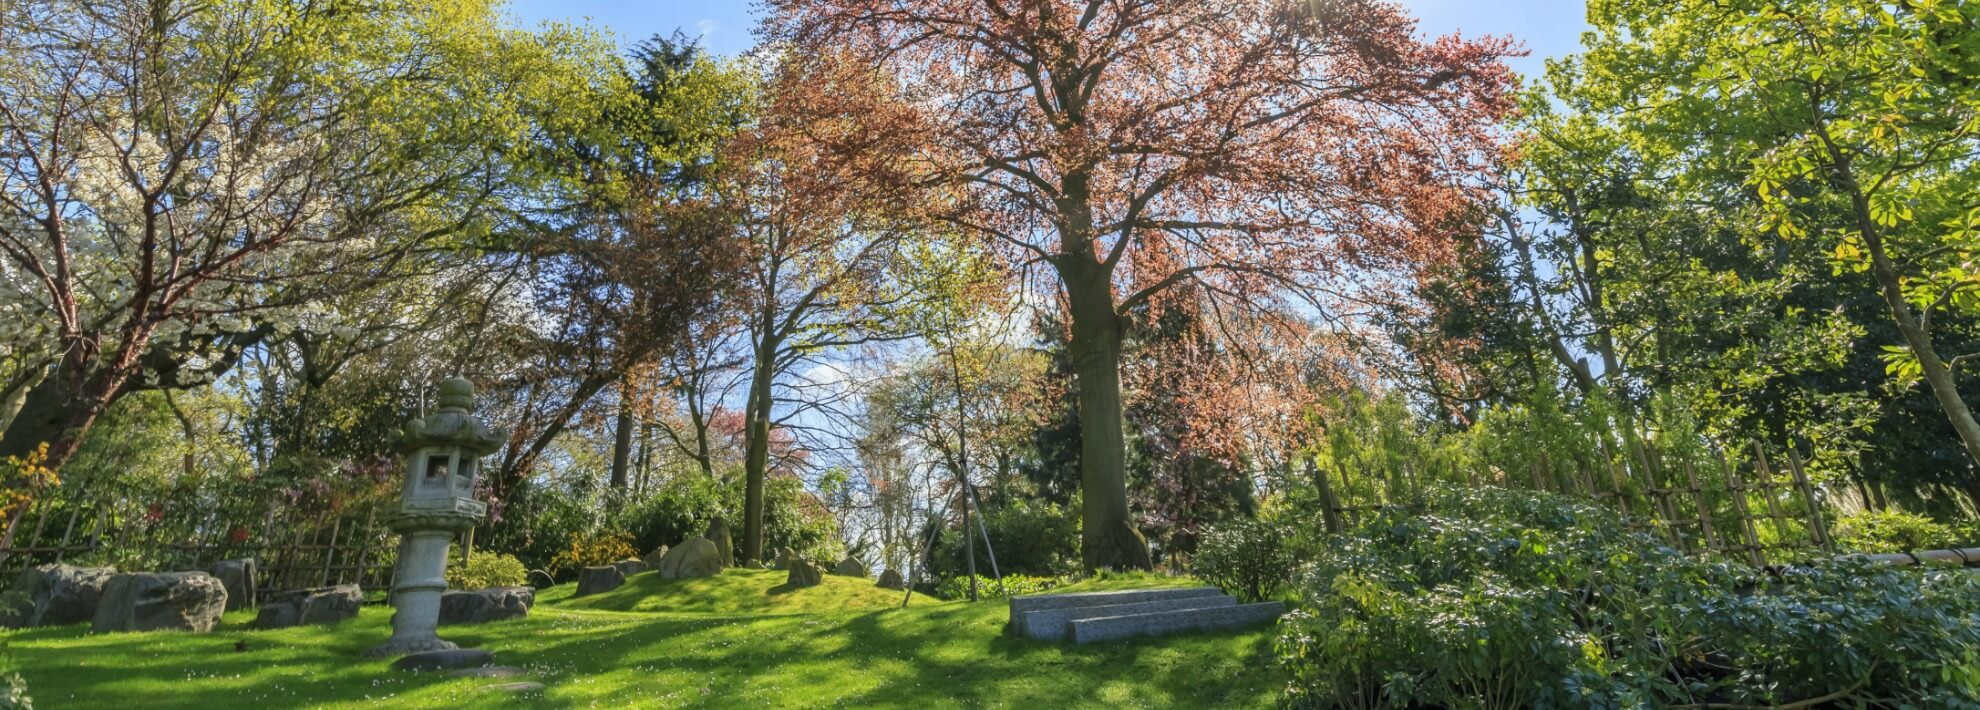 The UK's best green spaces London